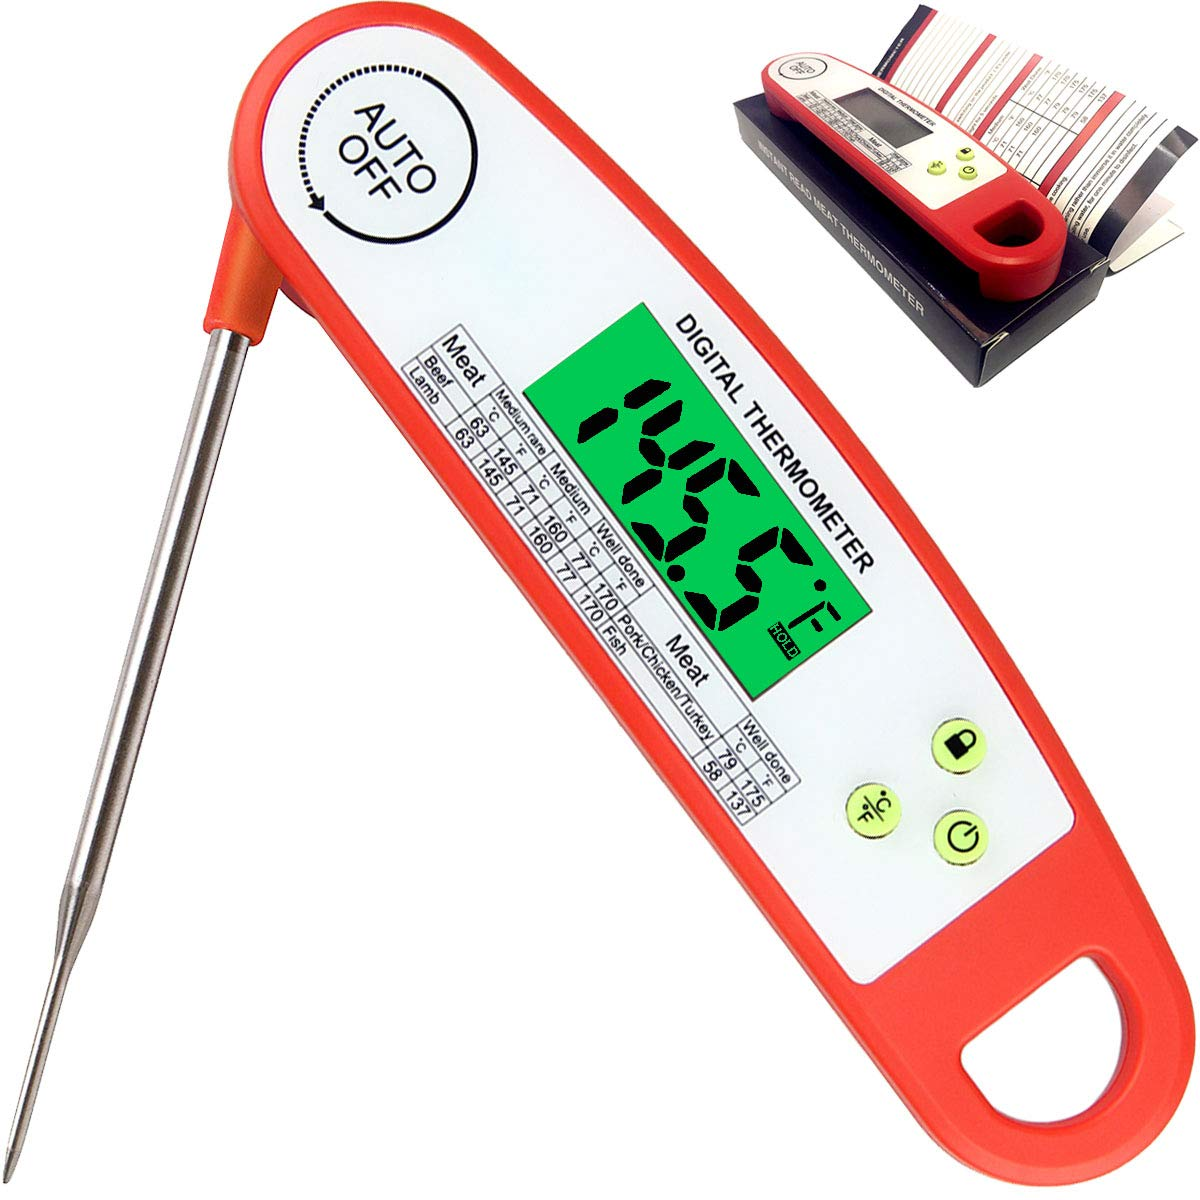 Meat Thermometer, Smart Auto On Off Long Foldable Probe Instant Read Thermometer Waterproof Digital Electronic Food Thermometers for Kitchen Cooking, Candy, Milk, Water, Grill Smoker